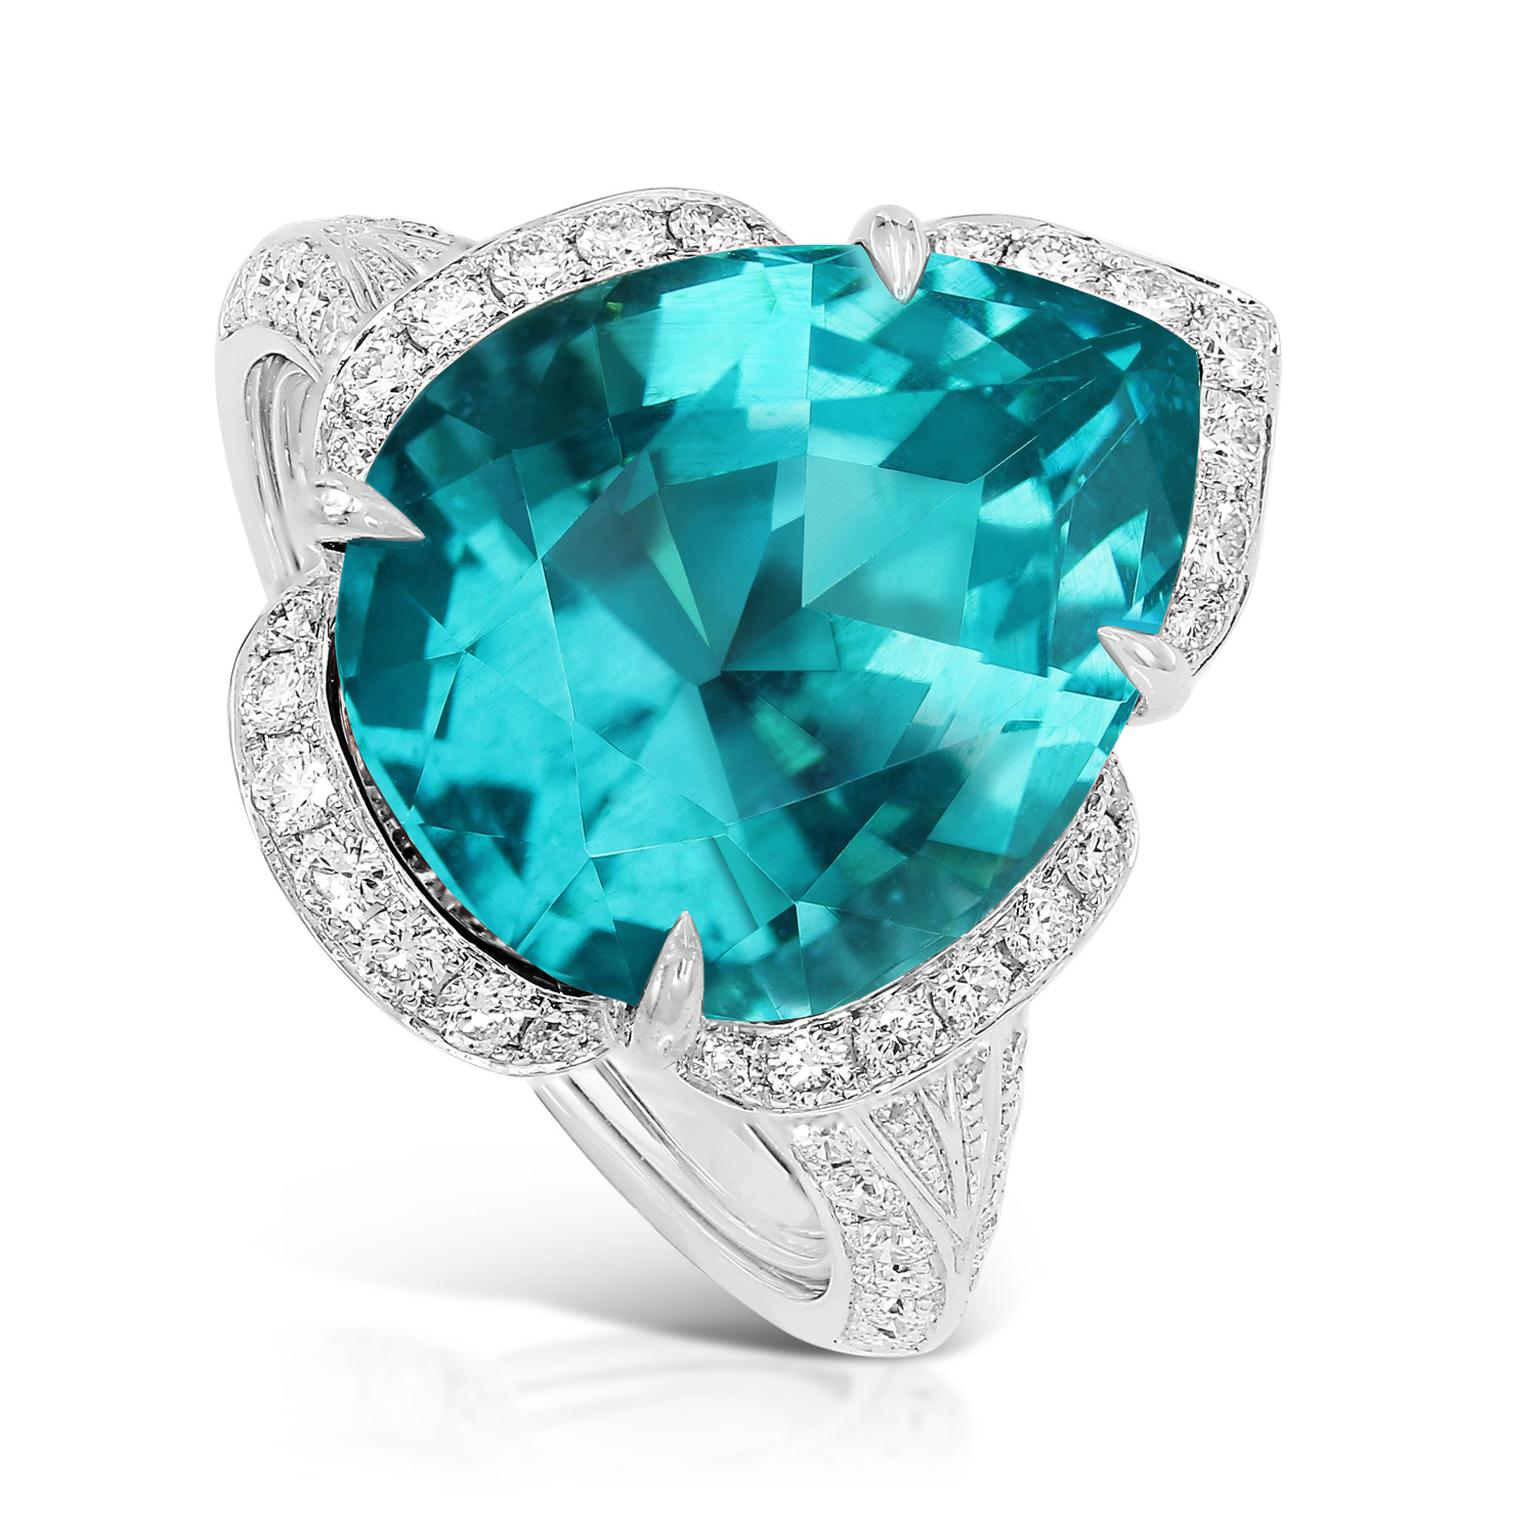 Kat Florence pear-cut apatite ring